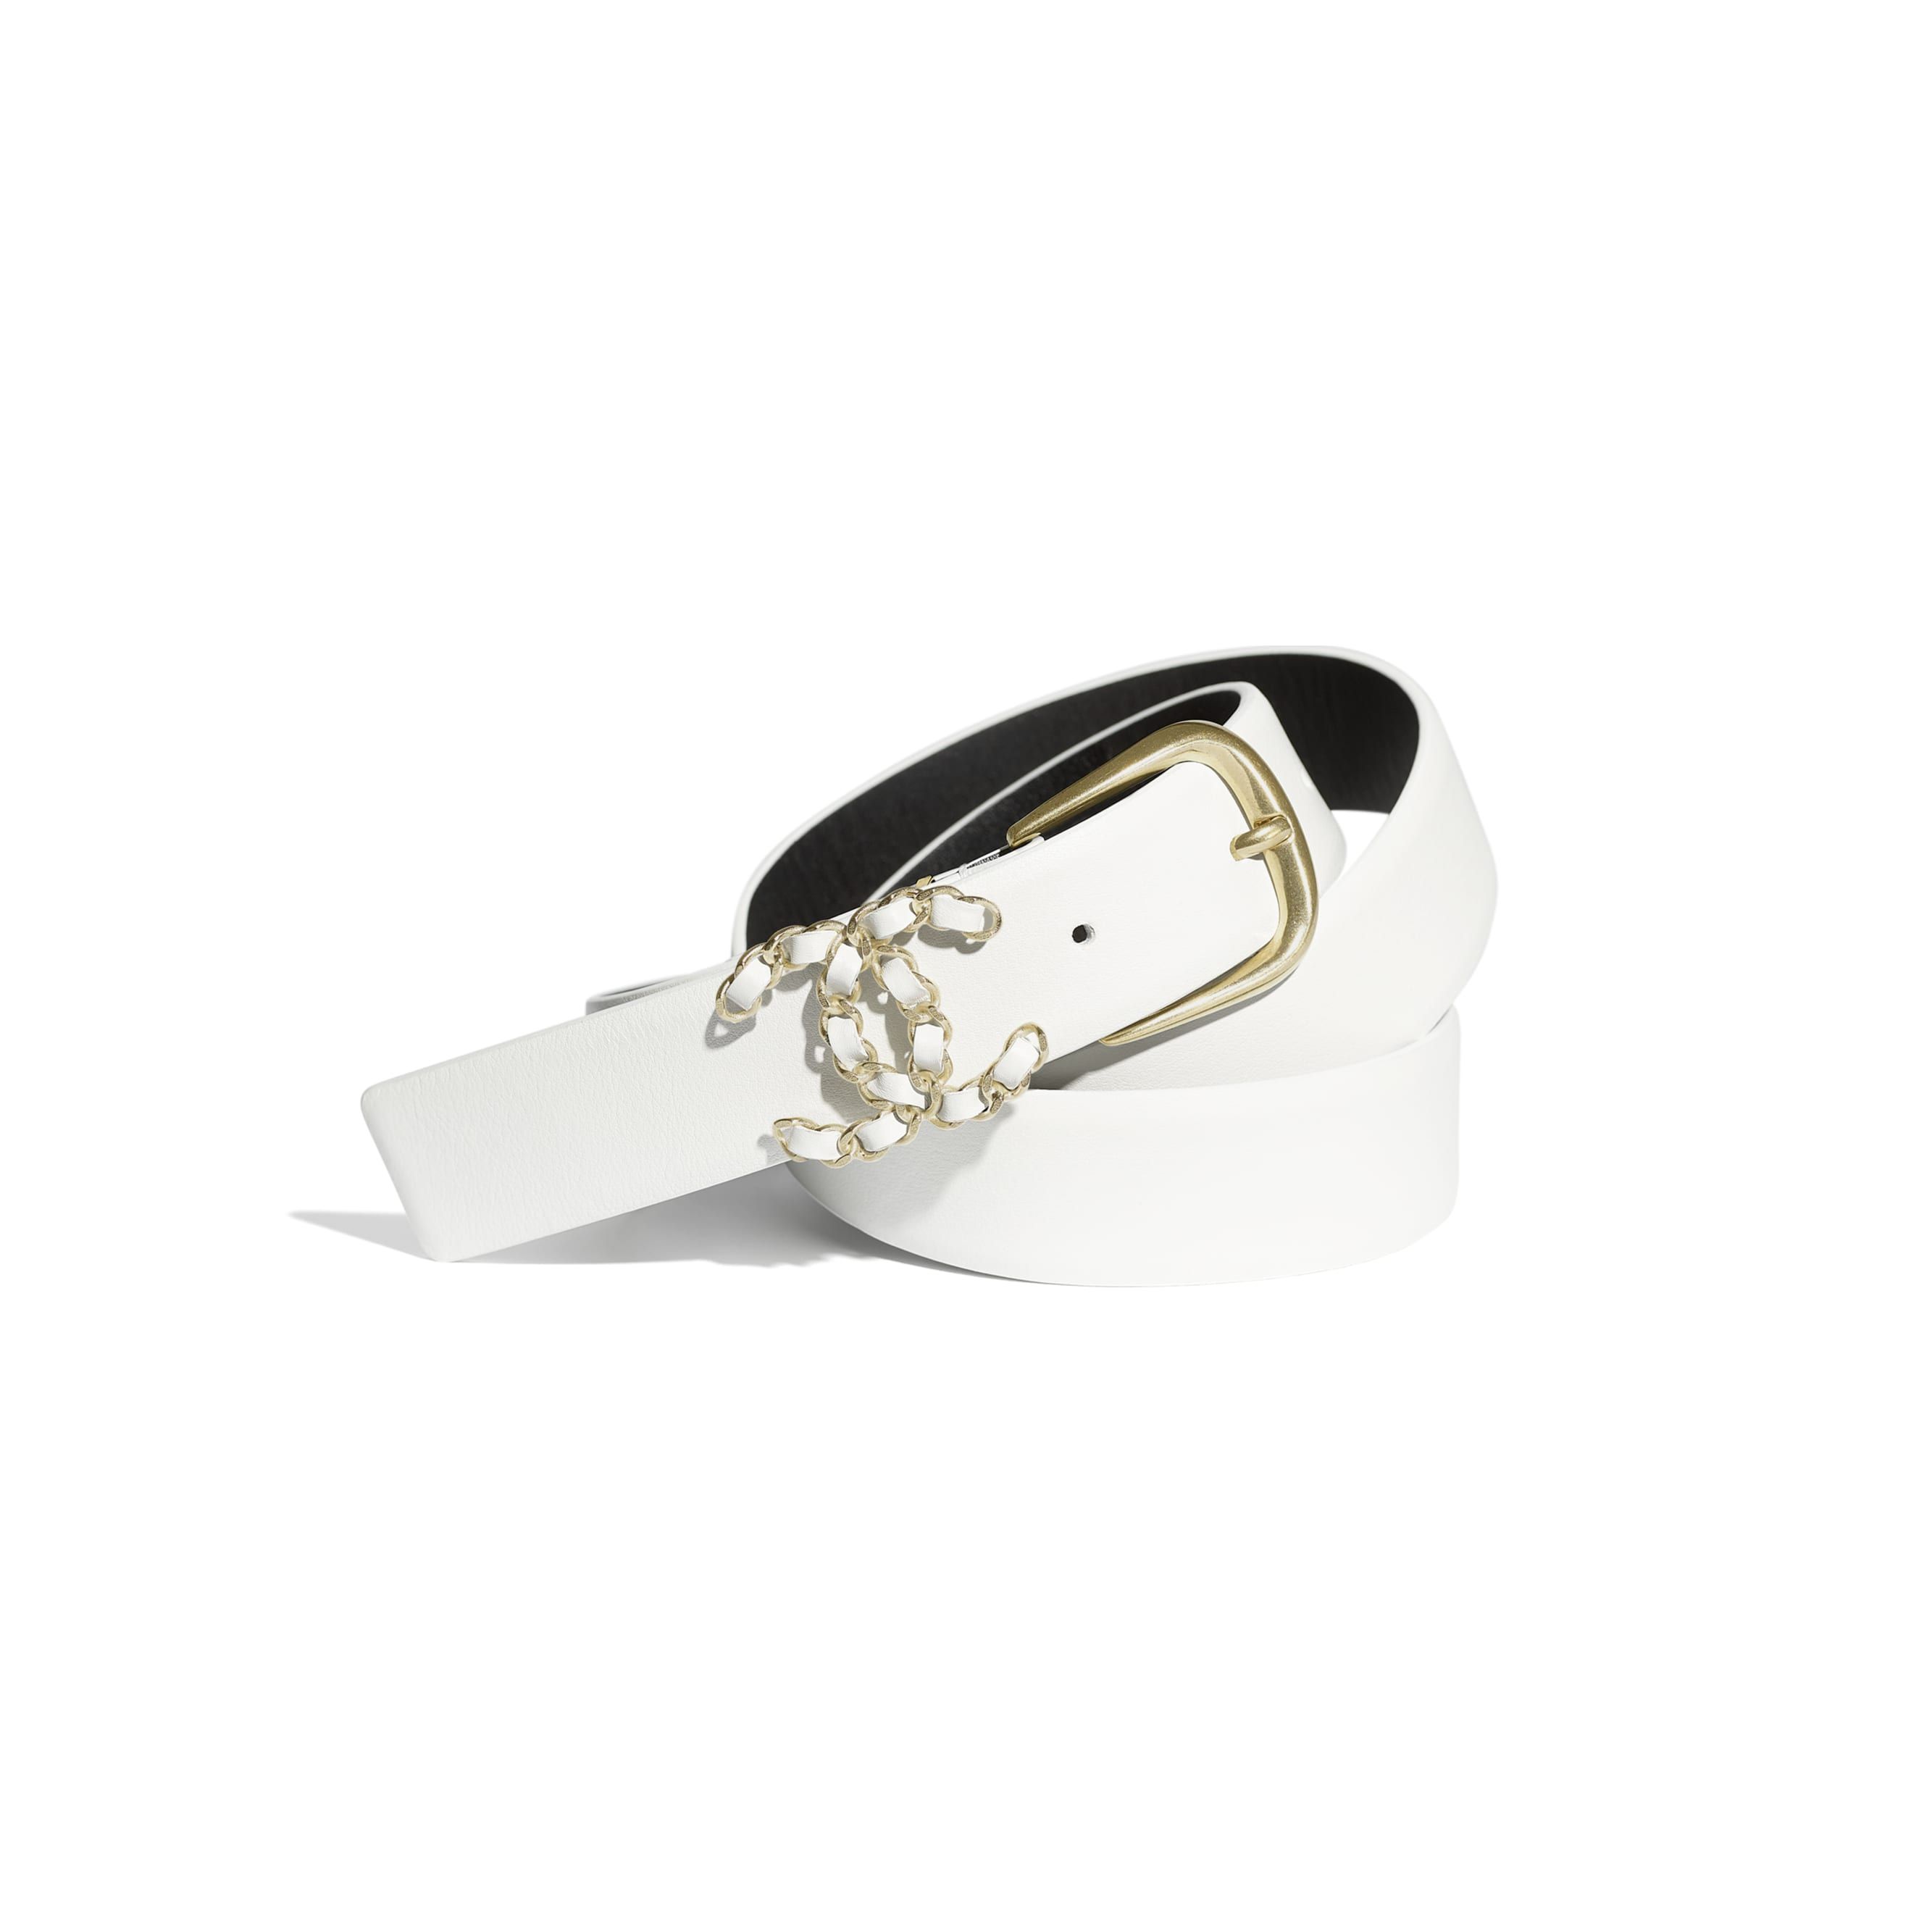 Belt - White - Calfskin & Gold-Tone Metal - CHANEL - Default view - see standard sized version